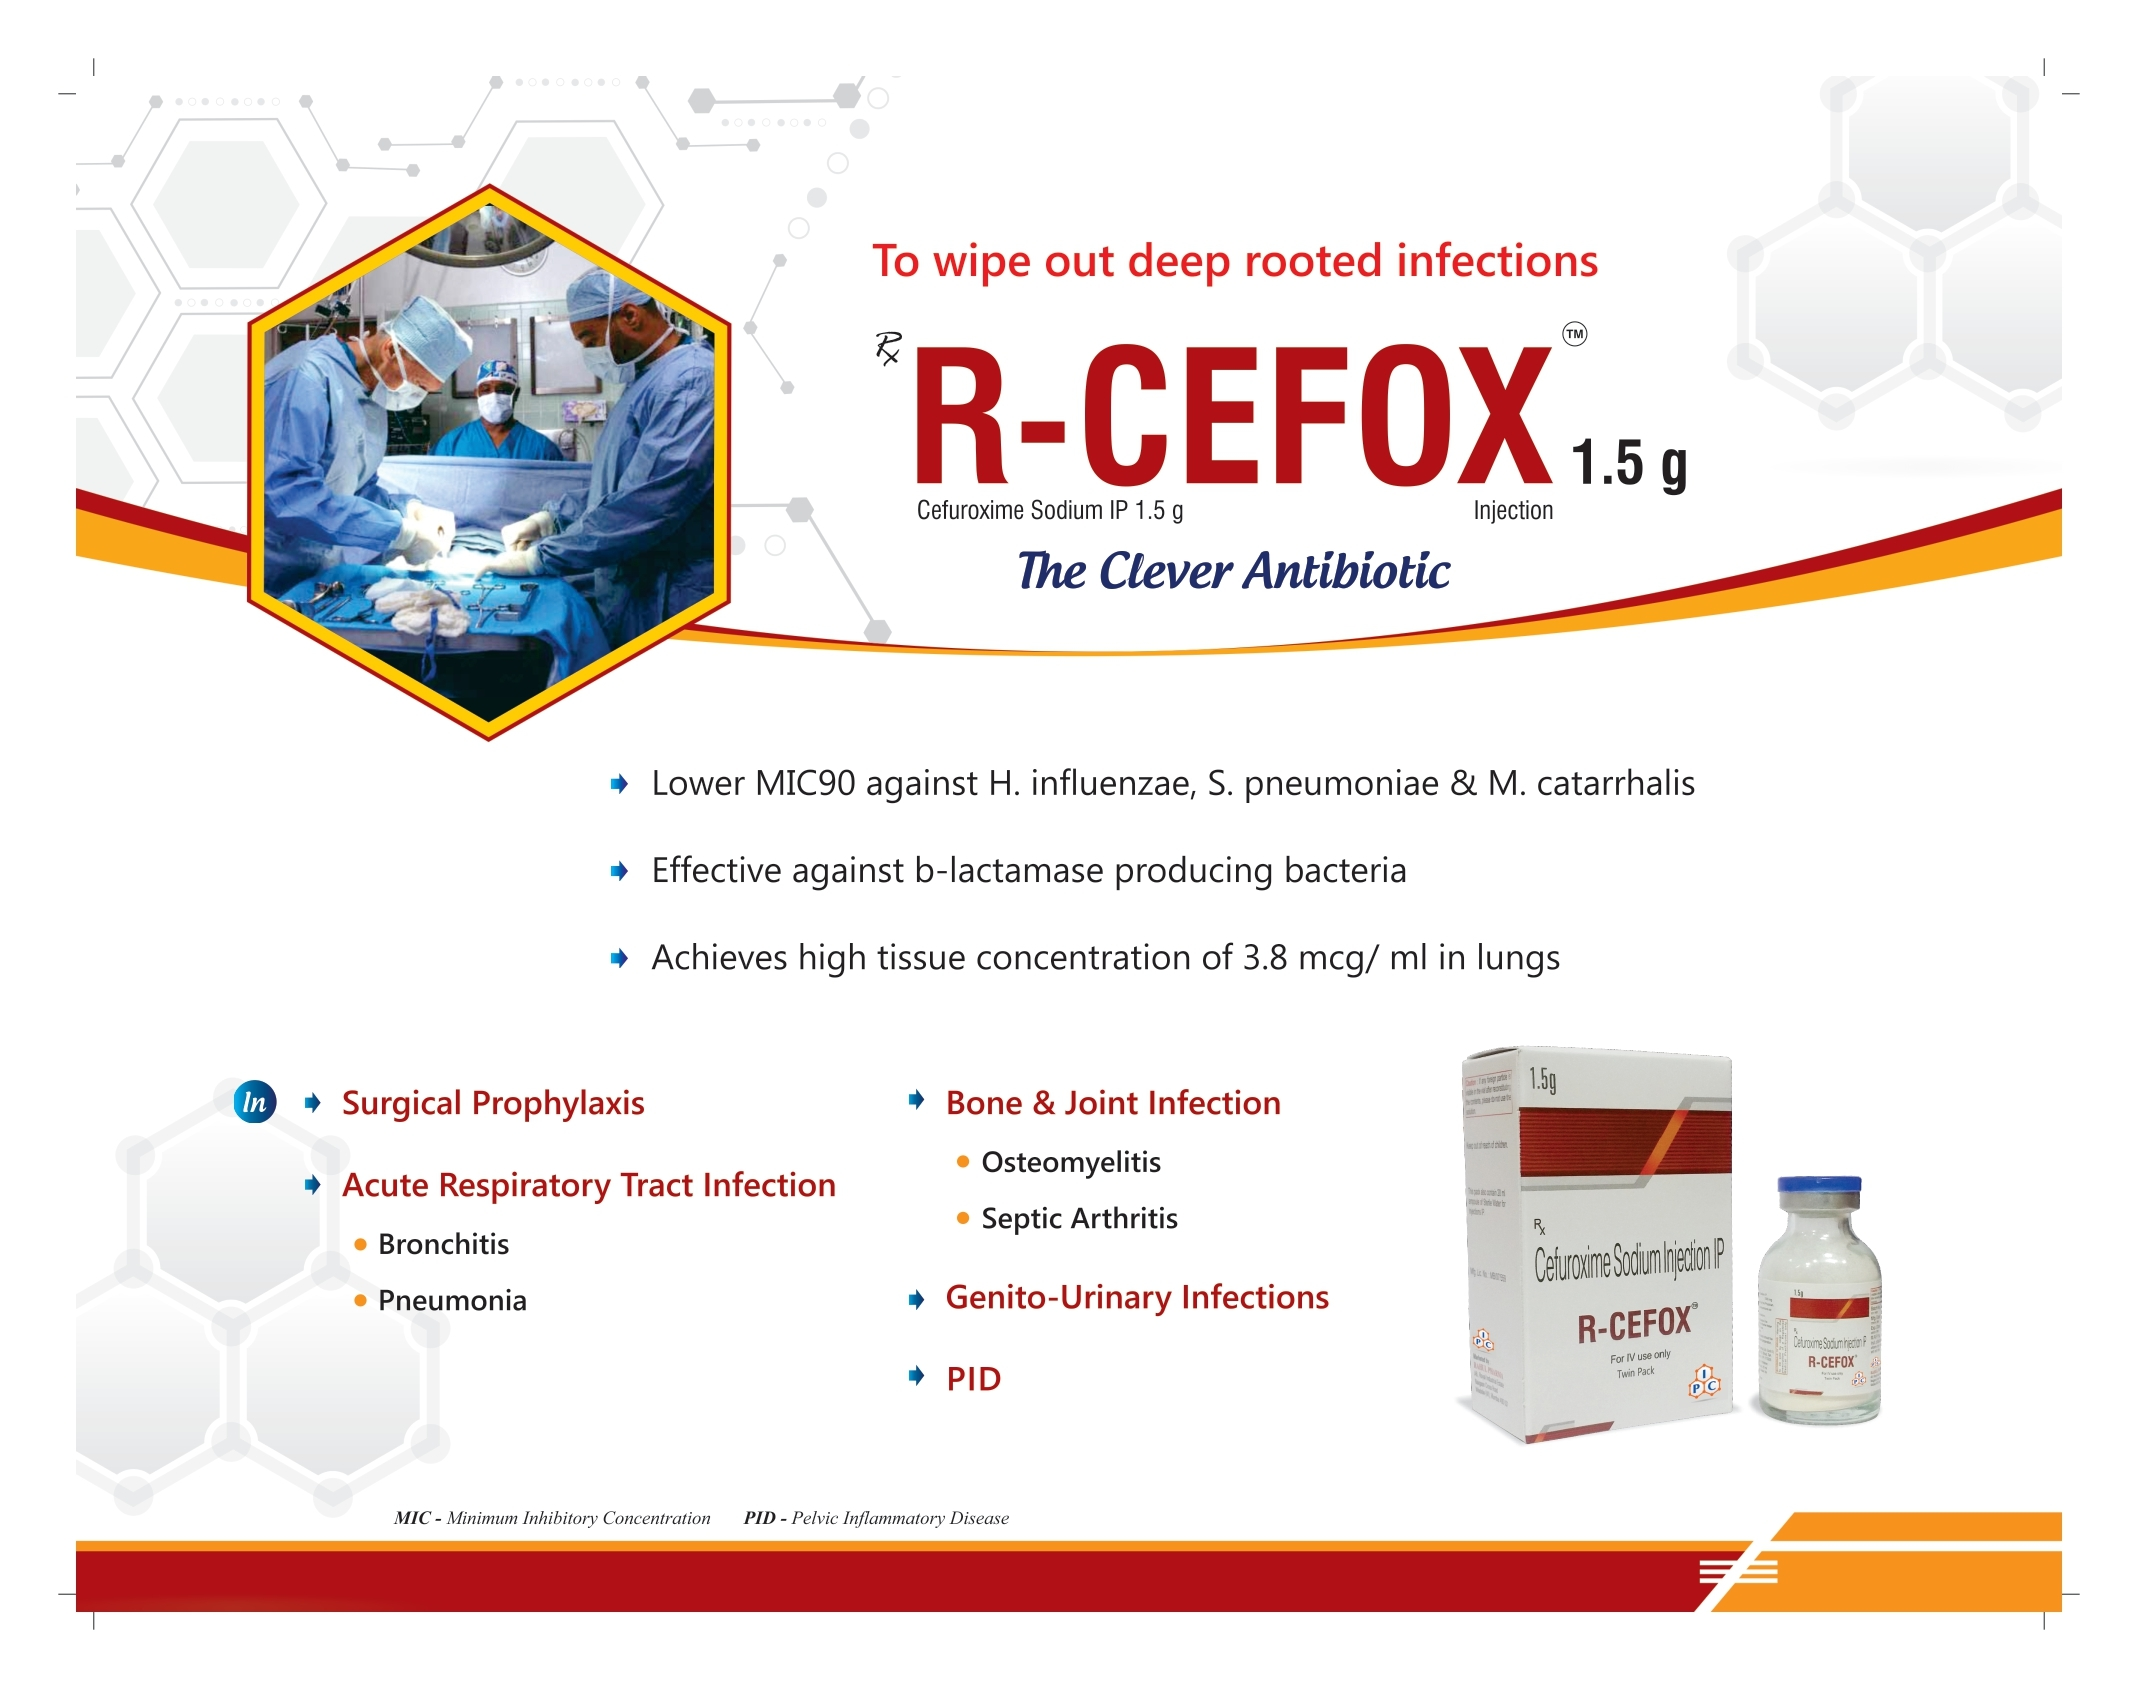 R-Cefox 1.5G Injection